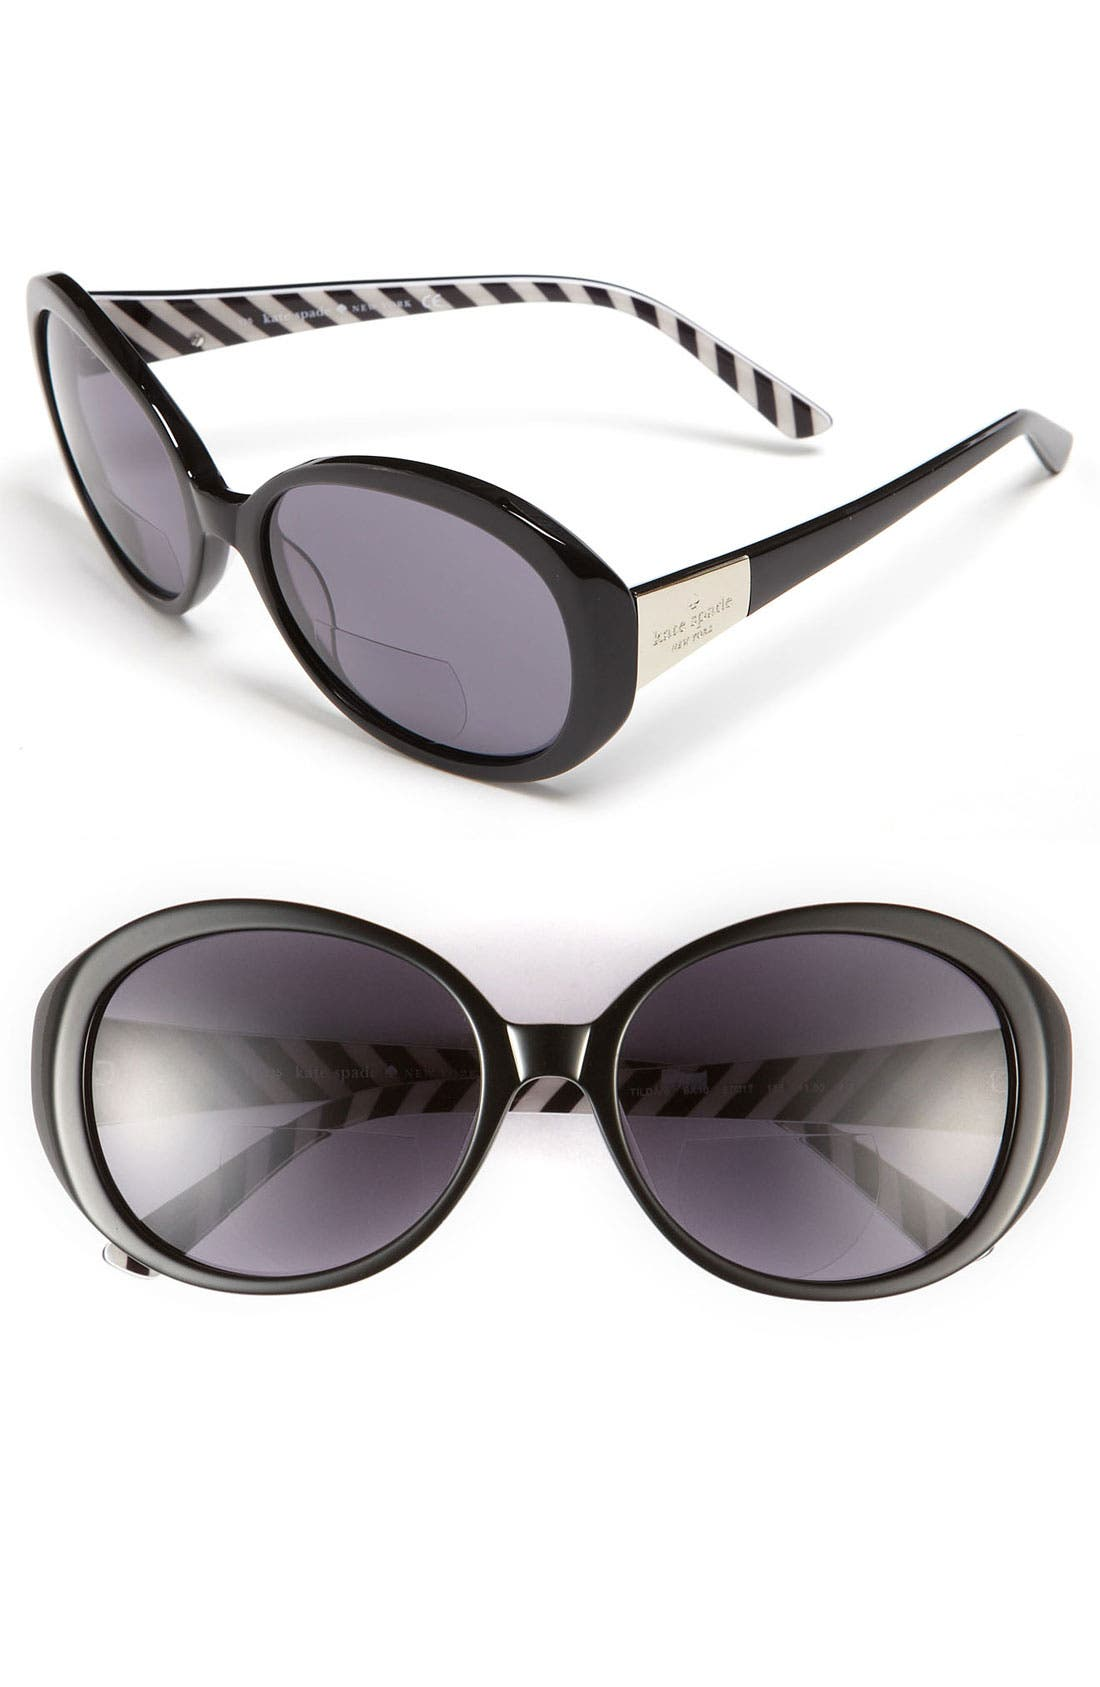 Alternate Image 1 Selected - kate spade new york 'tilda' reading sunglasses